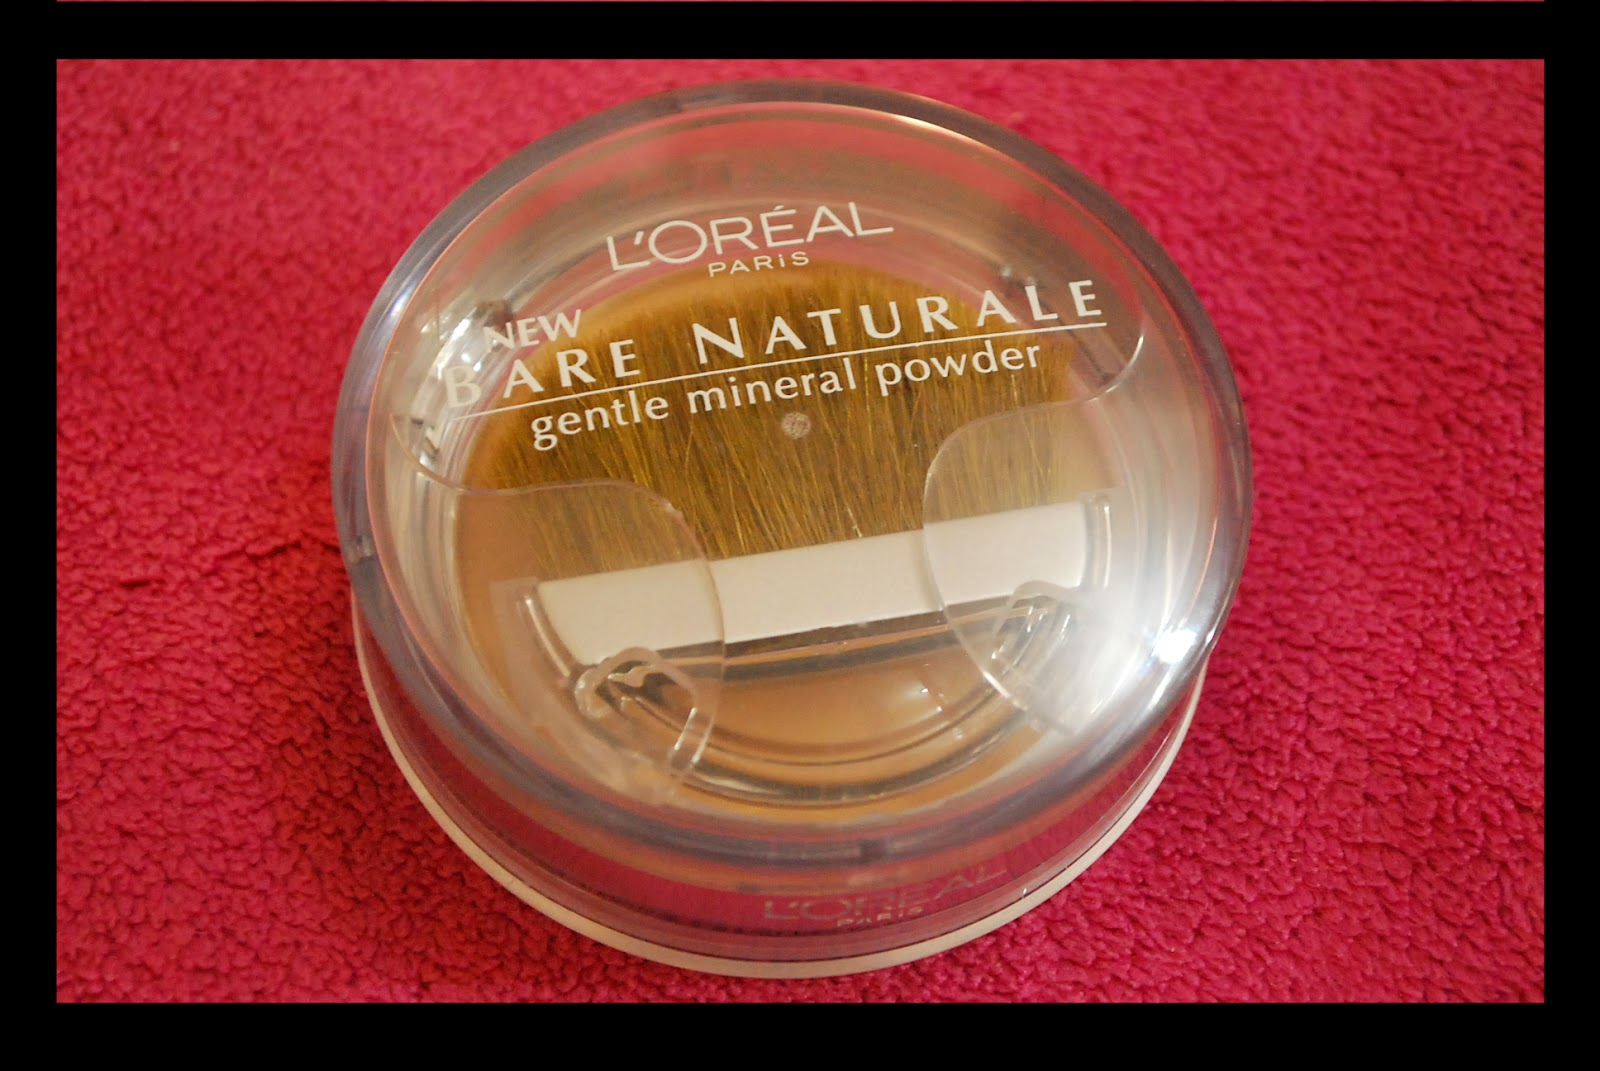 Bare Naturale Gentle Mineral Eye Shadow by L'Oreal #21